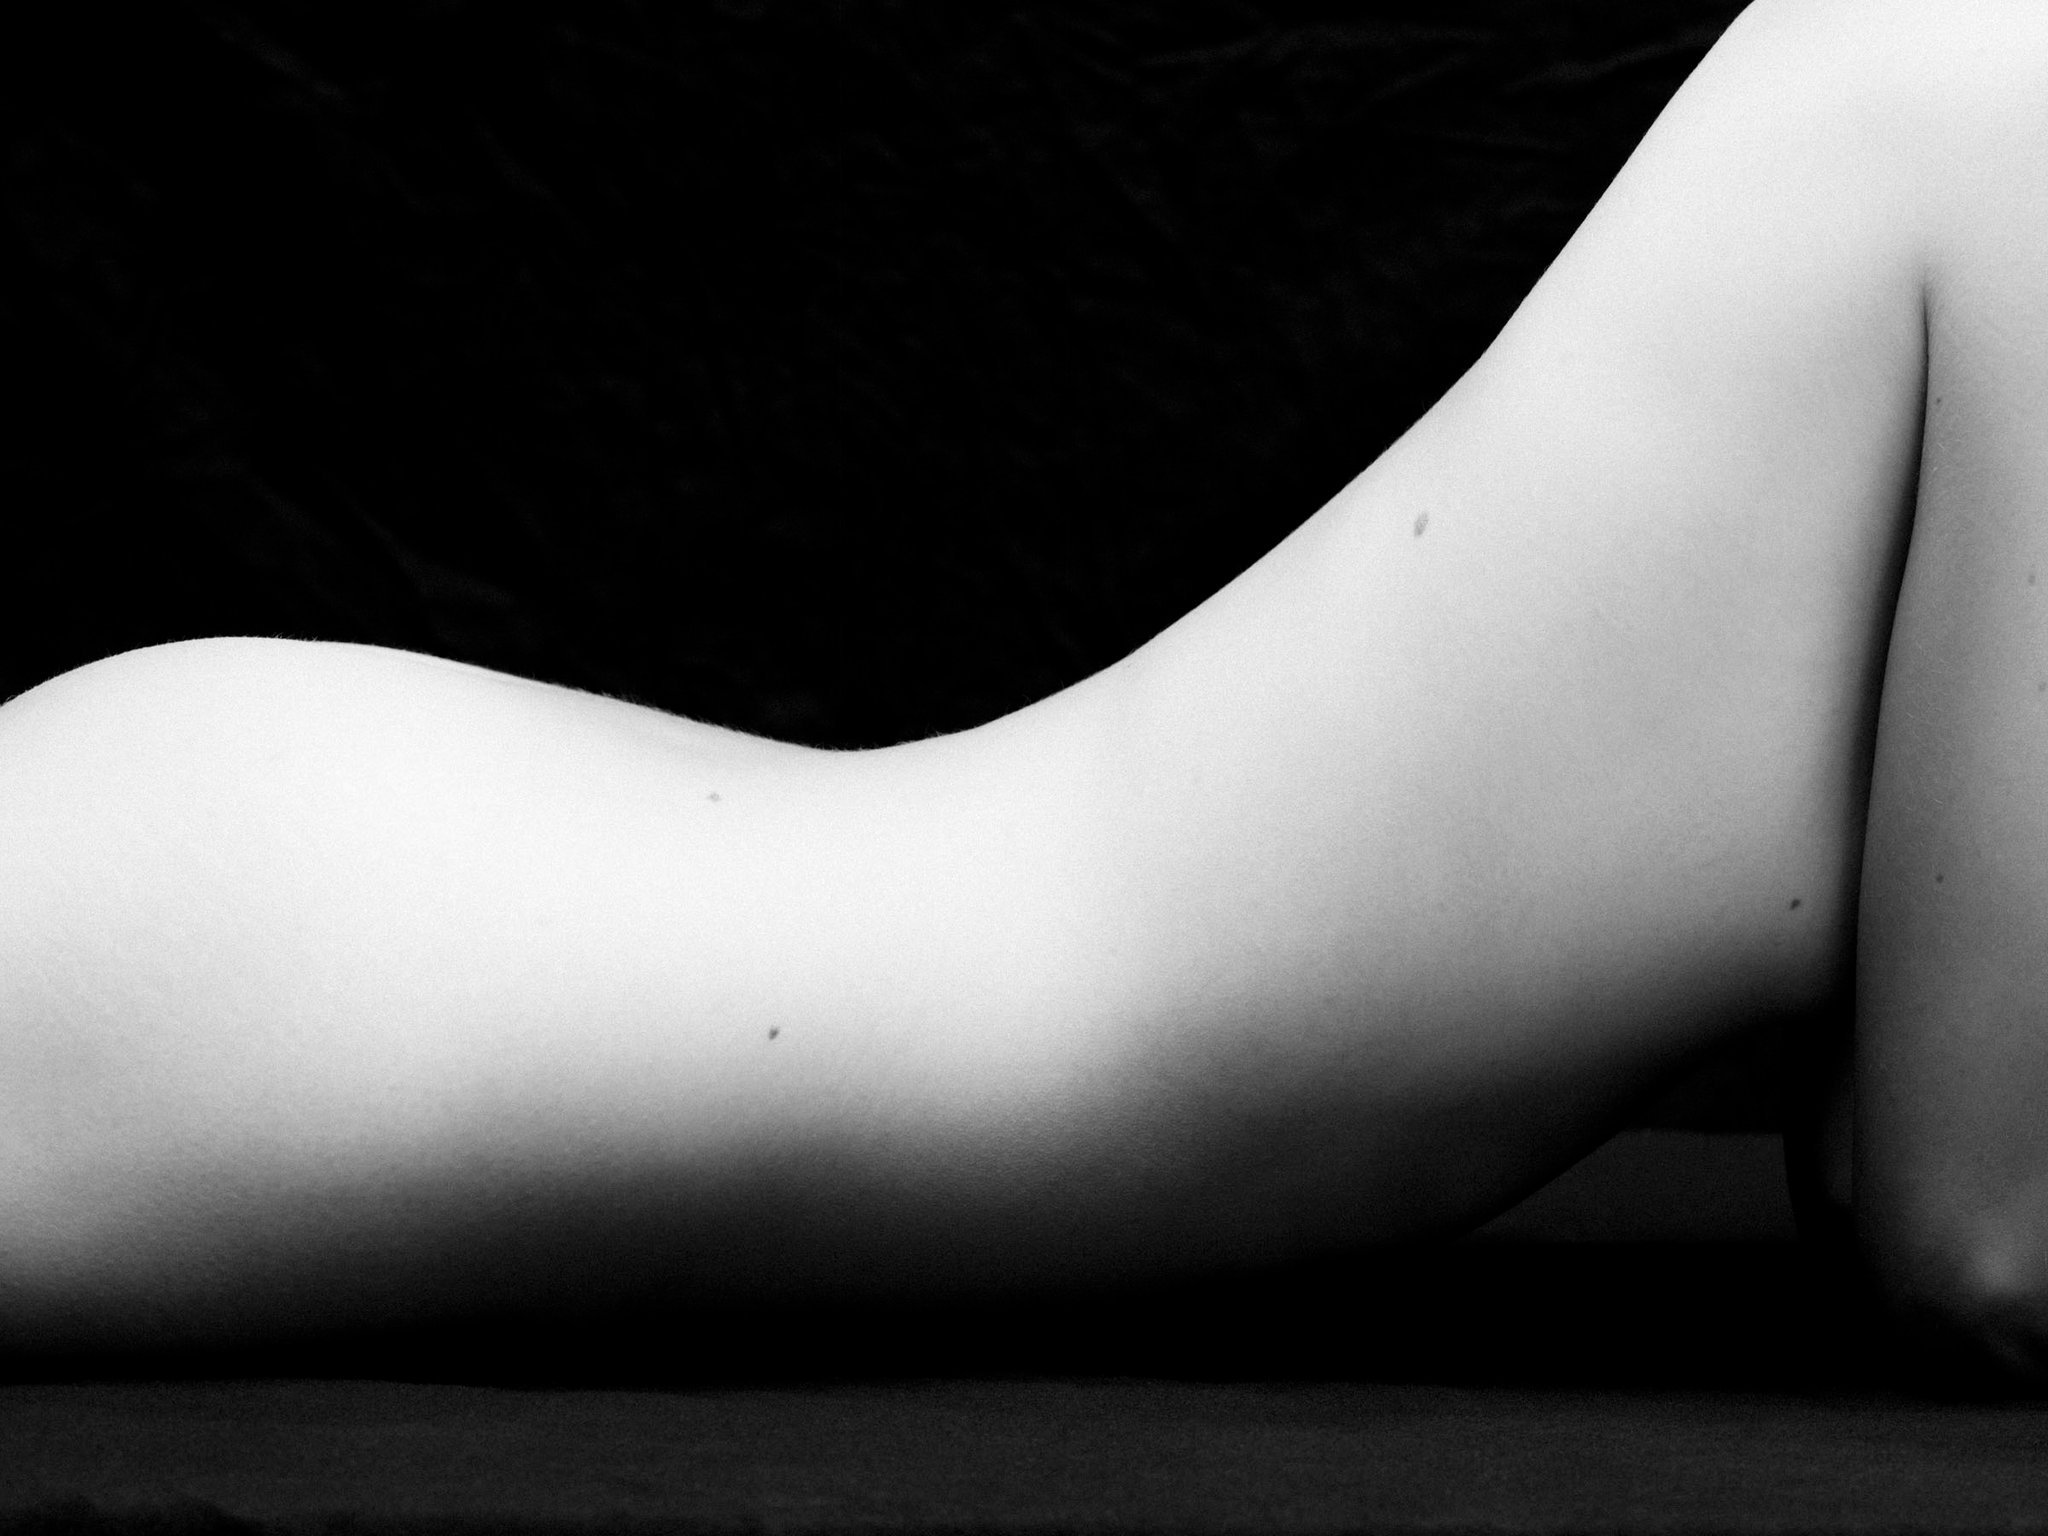 Nude Lines #5. New York, 2013.